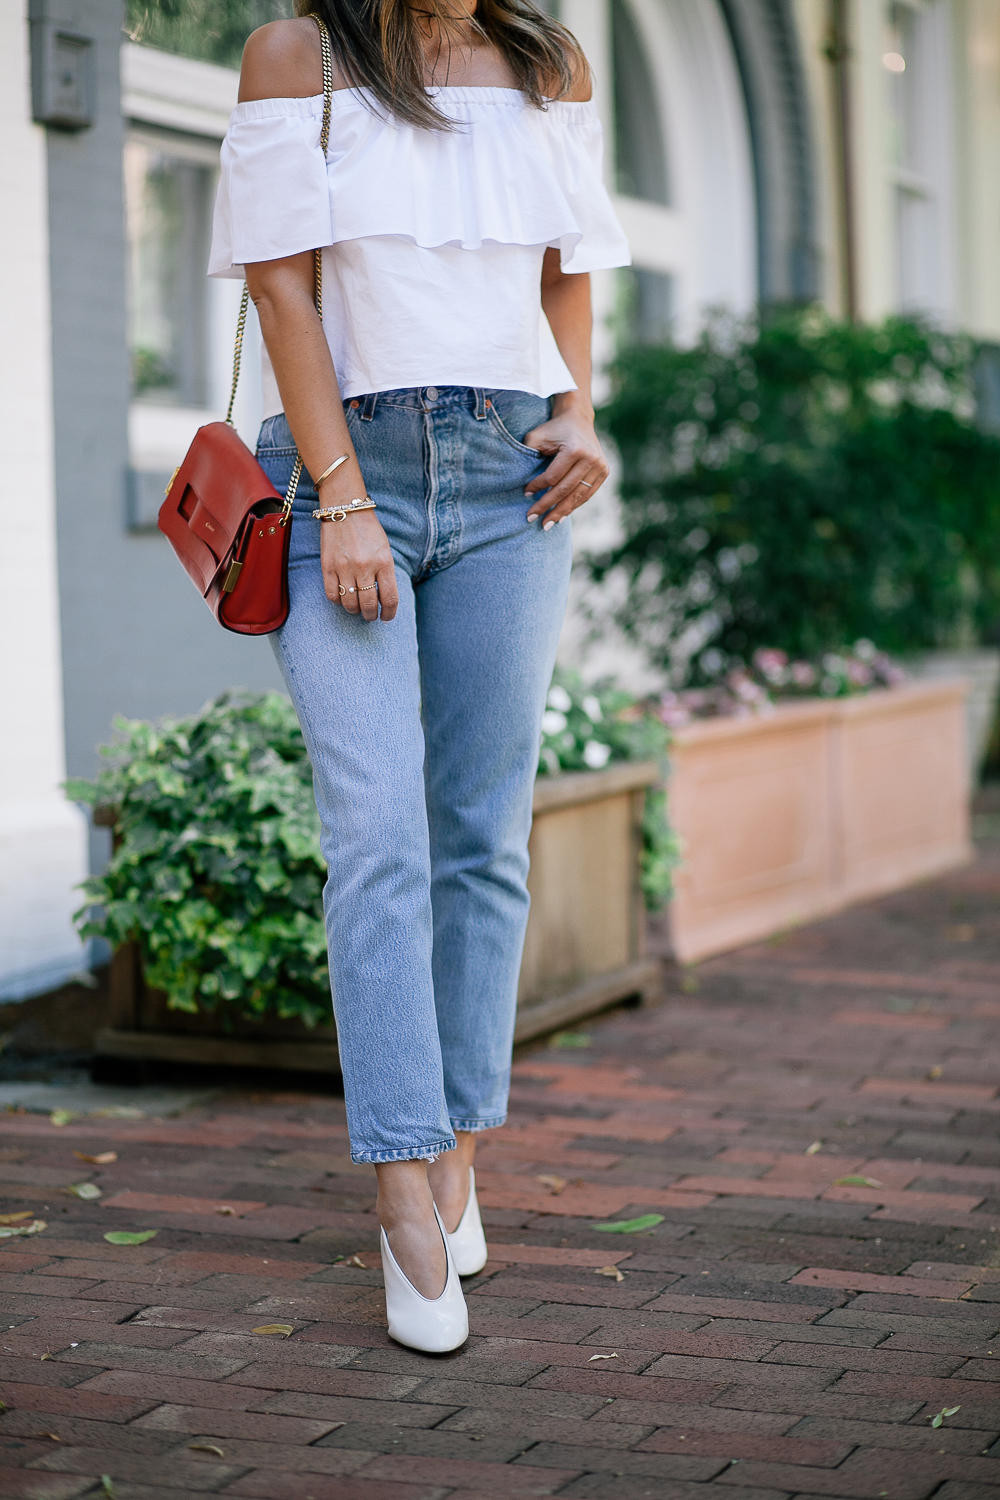 Style MBA wears RE/Done Denim and Lanvin Pumps